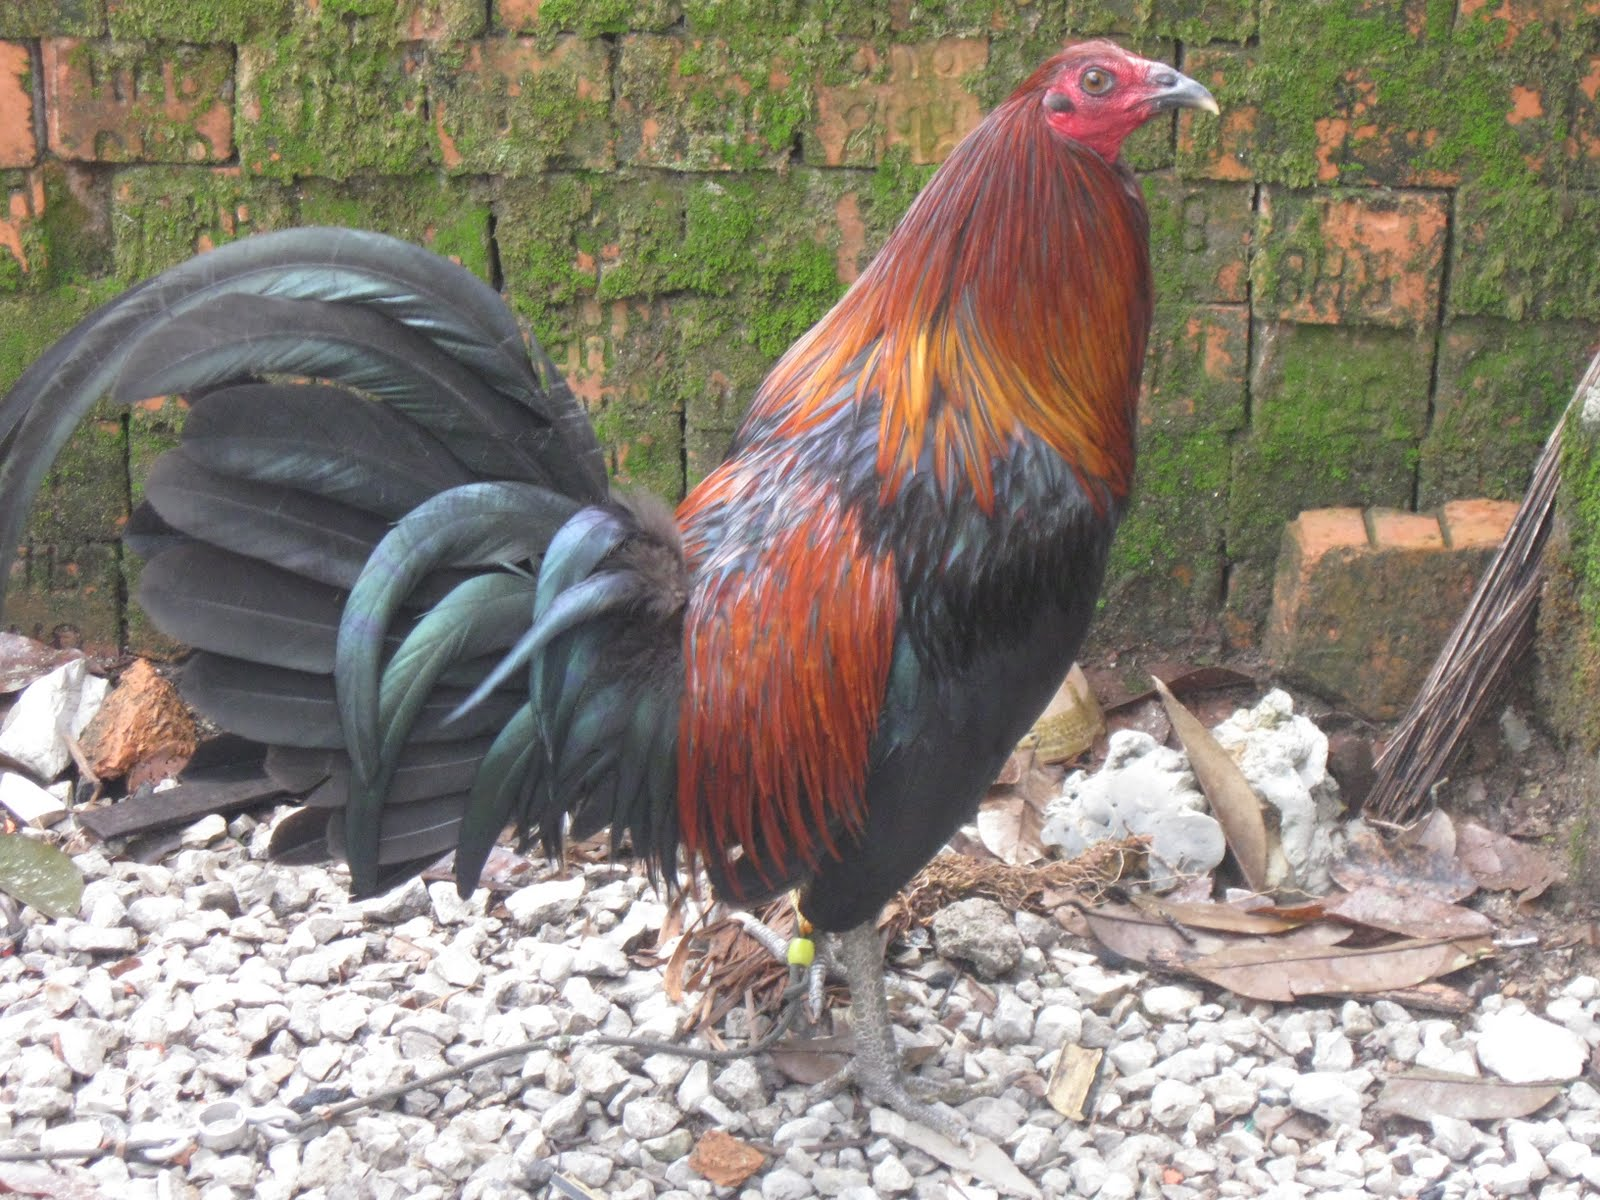 Brown Red Gamefowl Farm http://manoksabong-mark.blogspot.com/2011/09/black-mark-brown-red-hatch12-mcrae-14.html